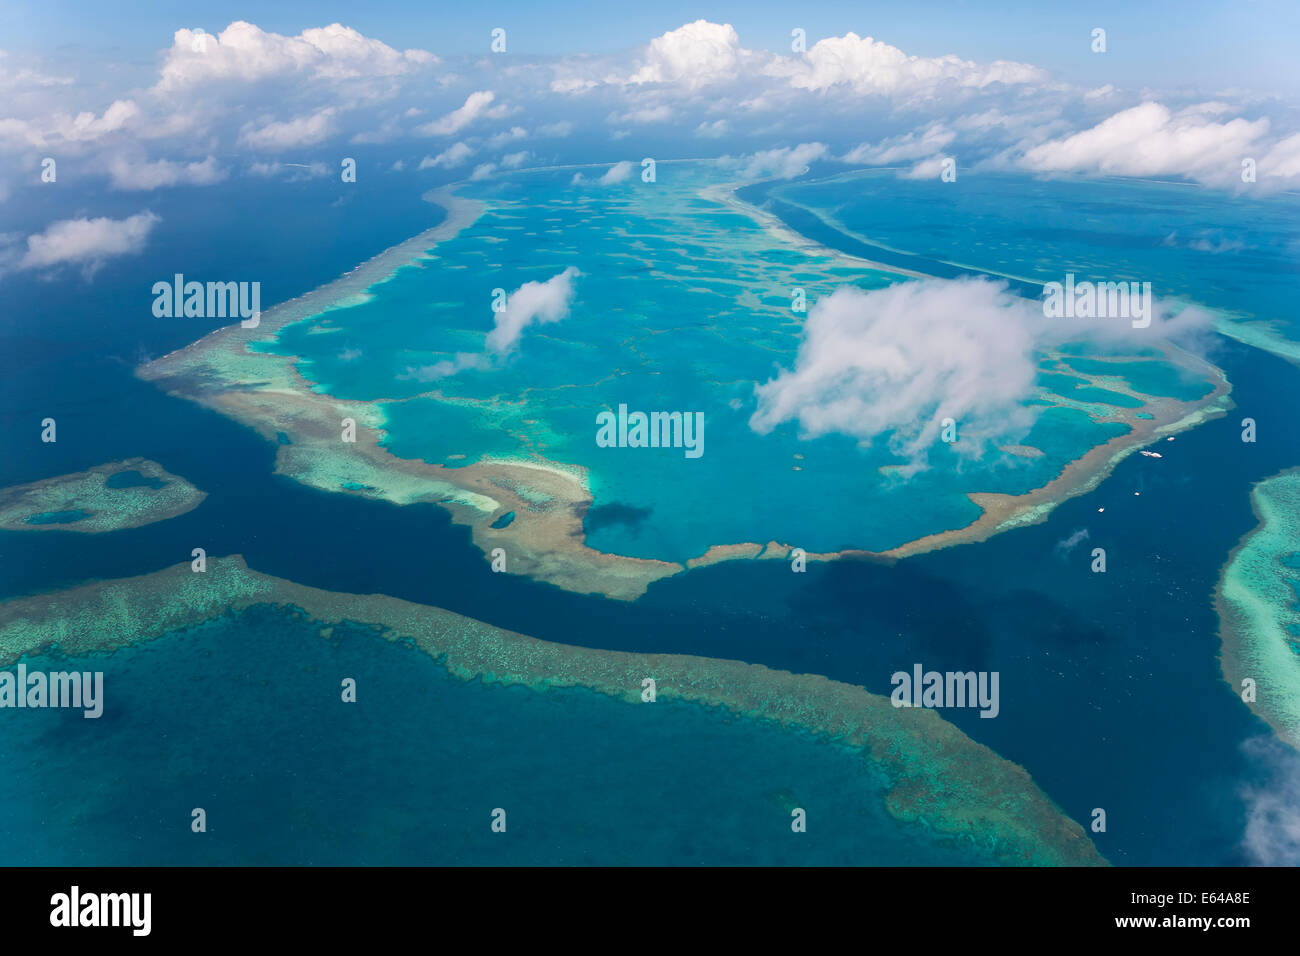 Great Barrier Reef, Queensland, Australia - Stock Image